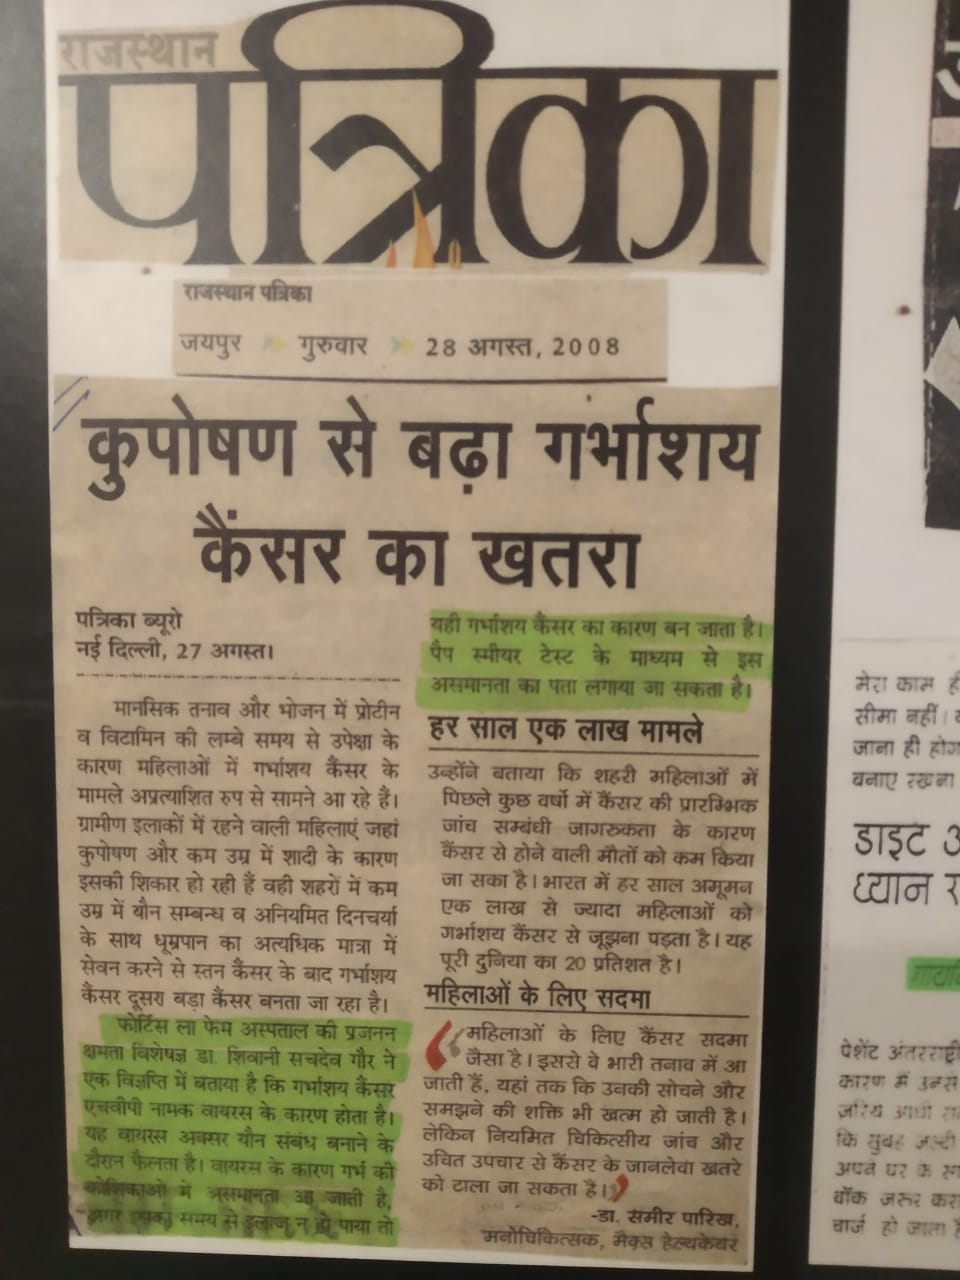 Risk of uterine cancer from malnutrition news in Rajasthan Patrika